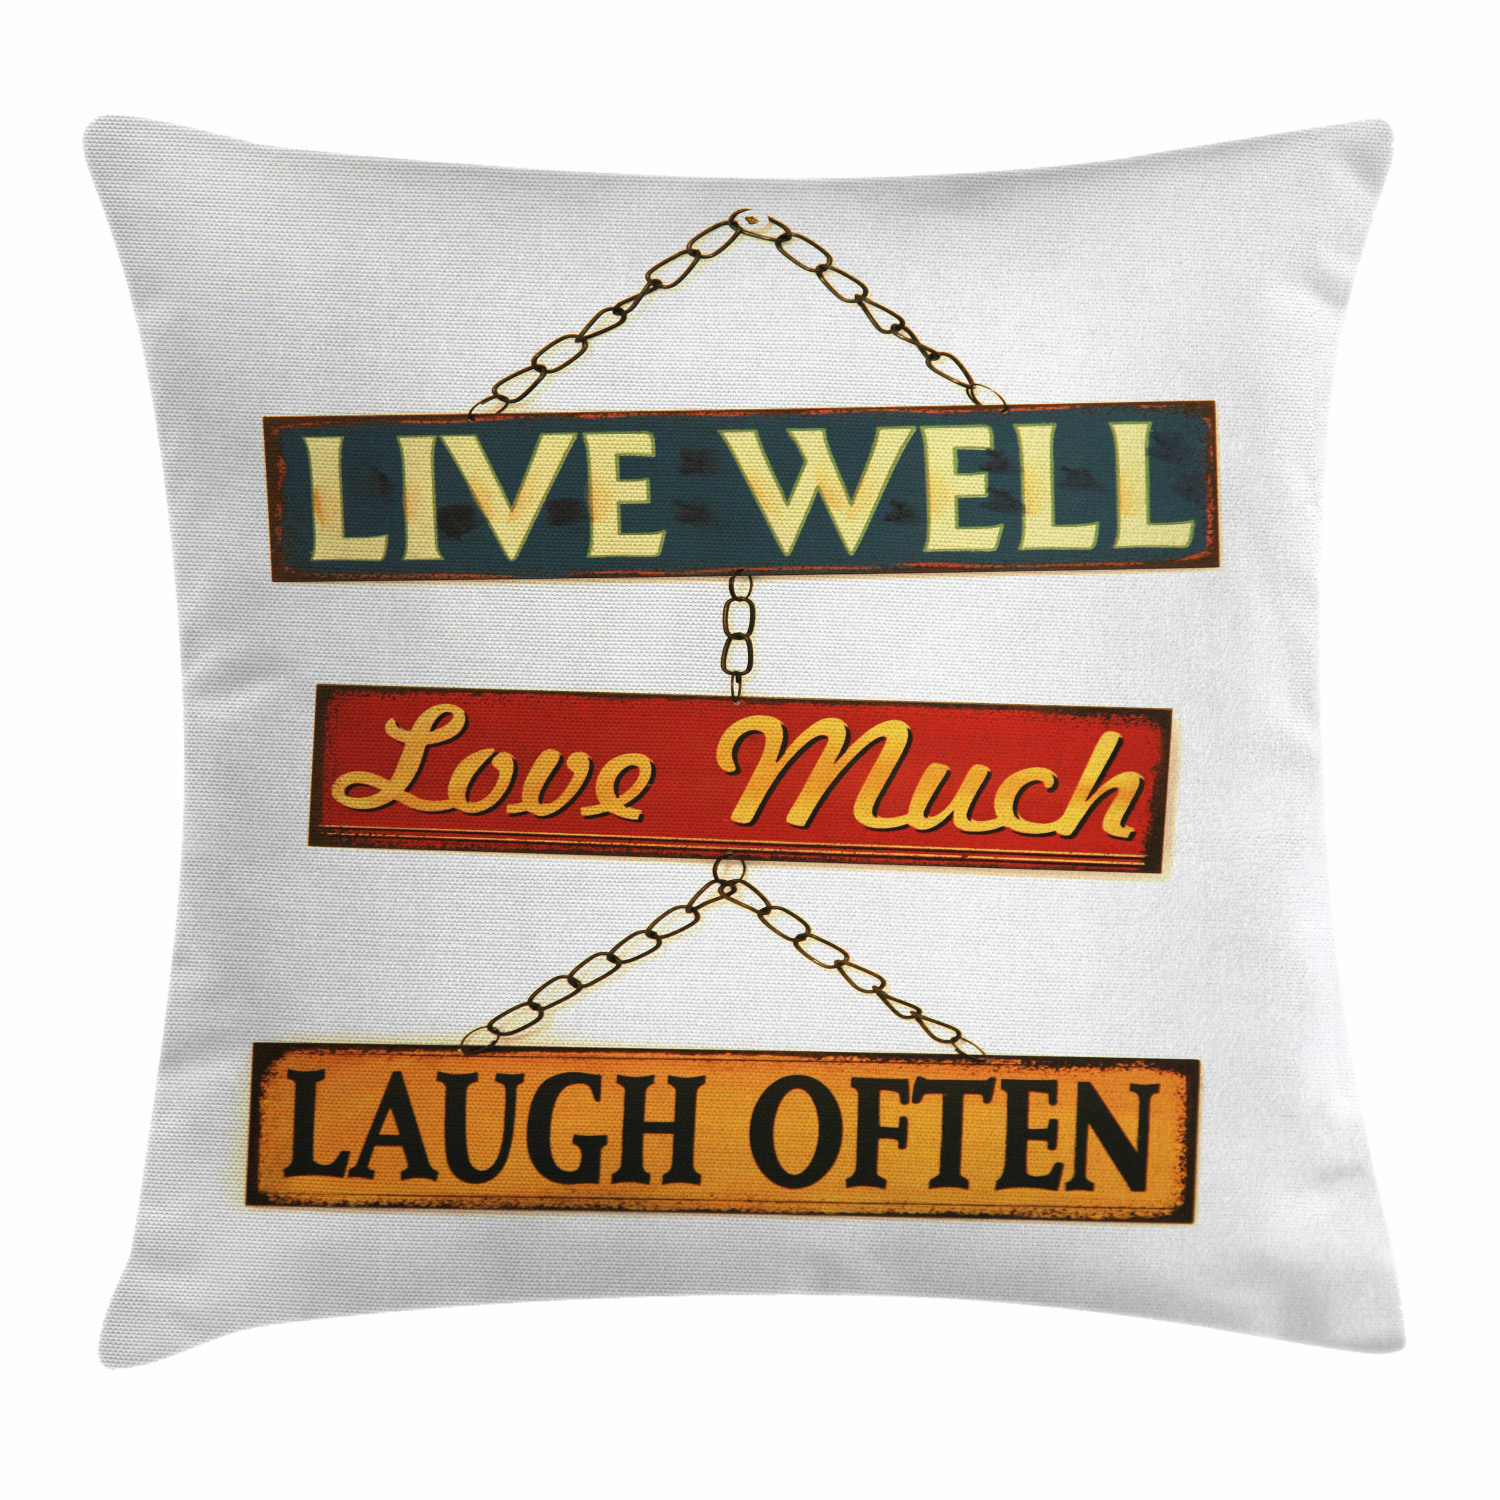 Live Laugh Love Decor Throw Pillow Cushion Cover Live Well Love Much Laugh Often Rusty Signs Tied With Chains Print Decorative Square Accent Pillow Case 16 X 16 Inches Multicolor By Ambesonne,Country Farmhouse Kitchen Lighting Ideas